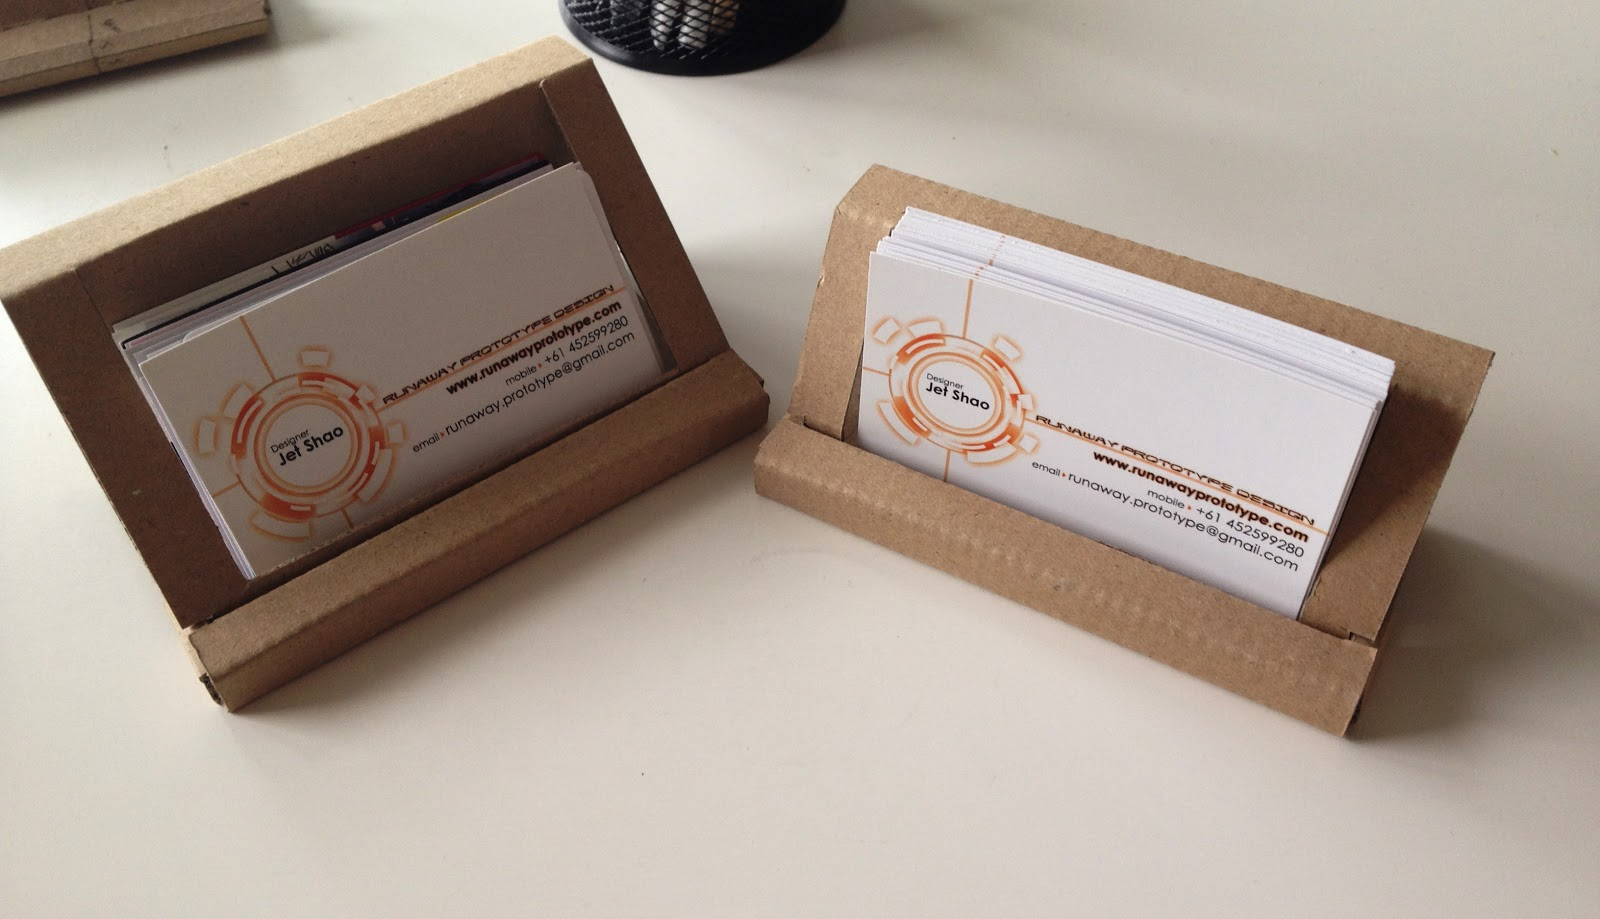 Cardboard business cards unlimitedgamers cardboard business card holders best business cards flashek Image collections